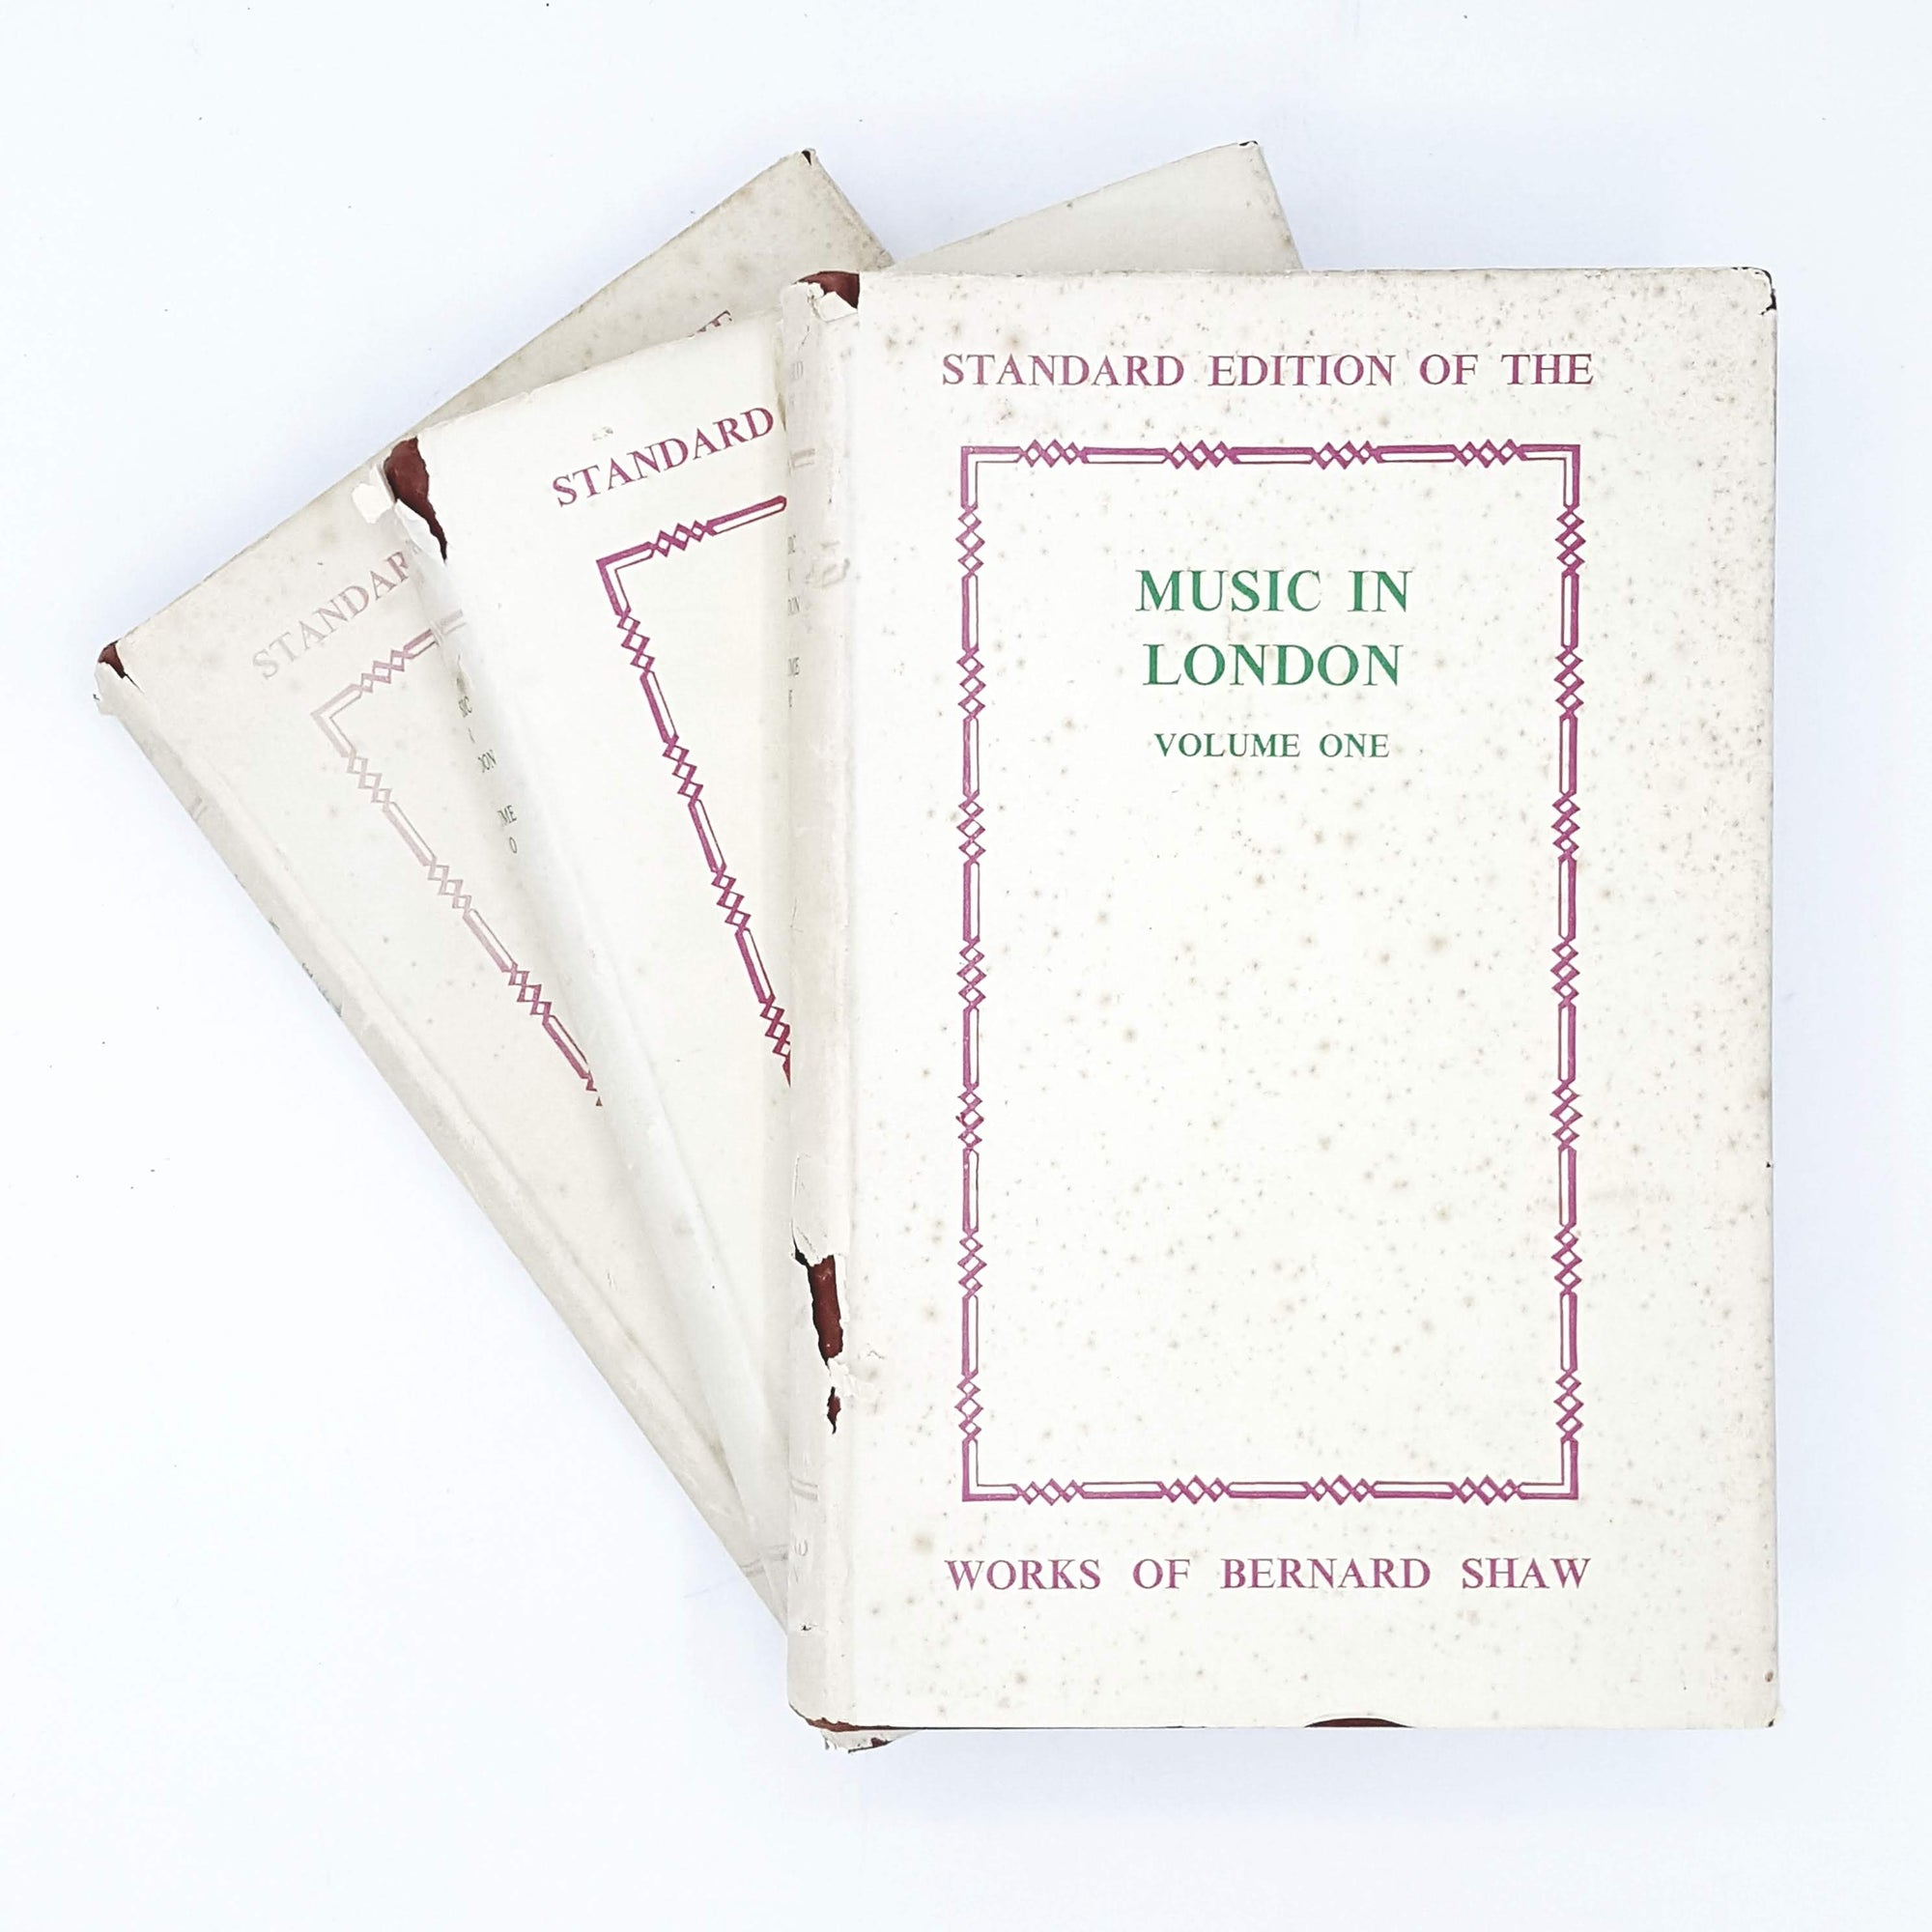 Collection Music in London by Bernard Shaw 1949